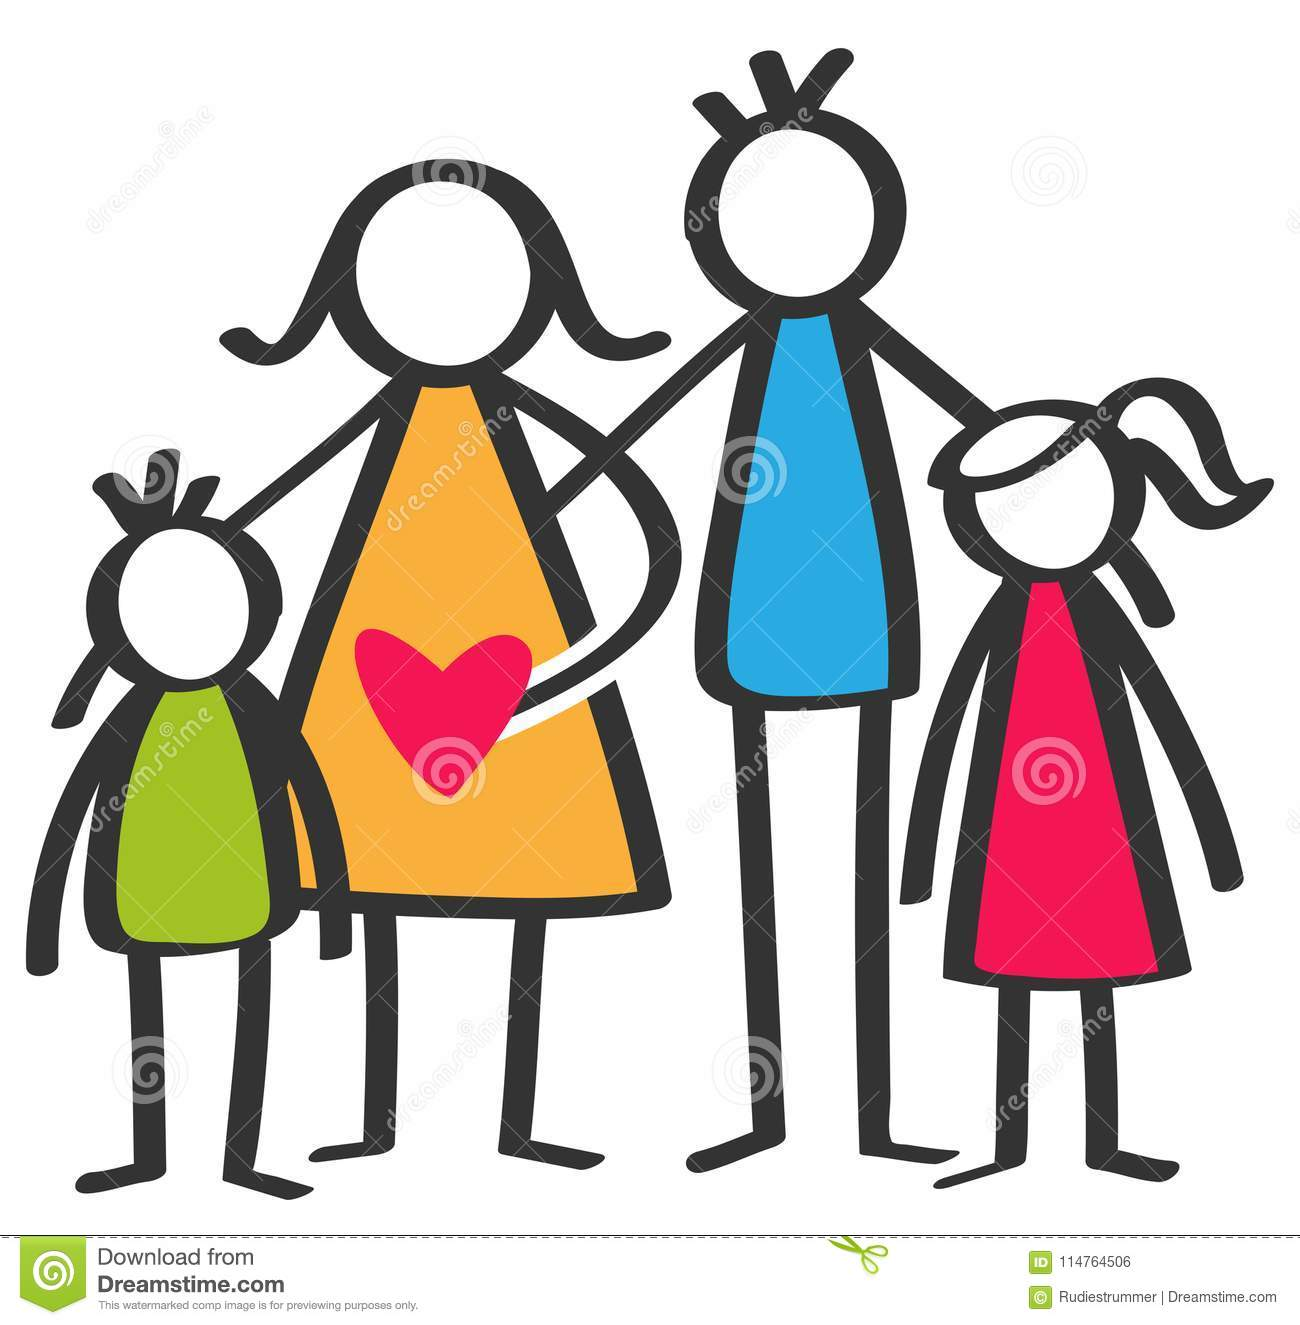 Simple colorful stick figures happy family, mother, father, son, daughter, children